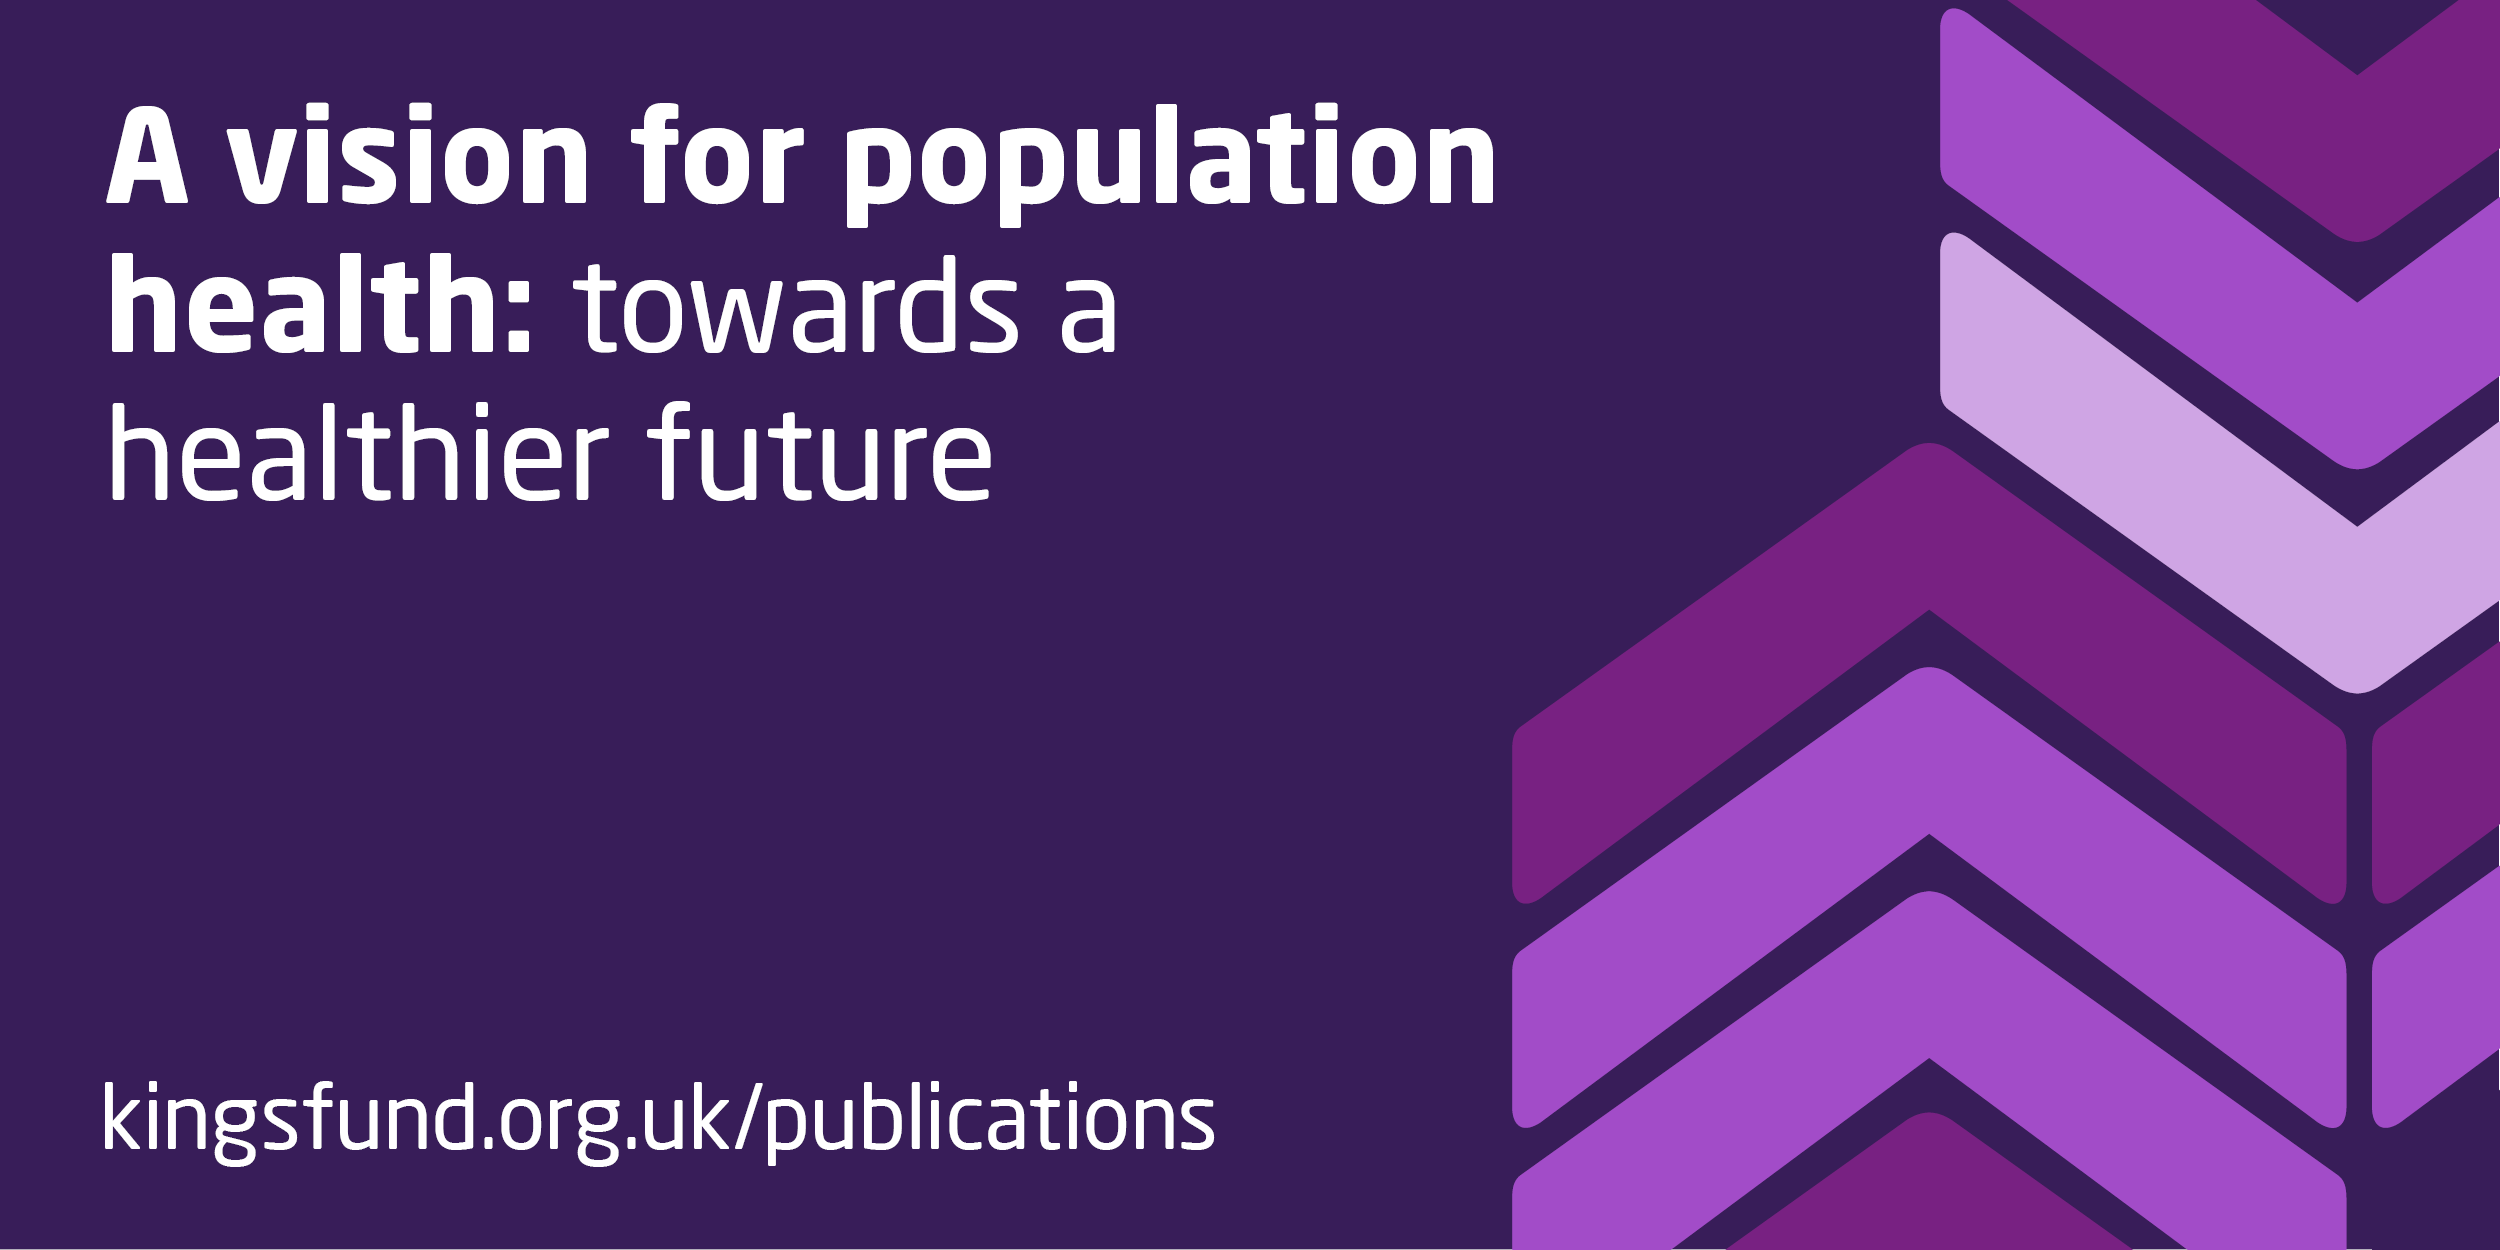 A vision for population health   The King's Fund